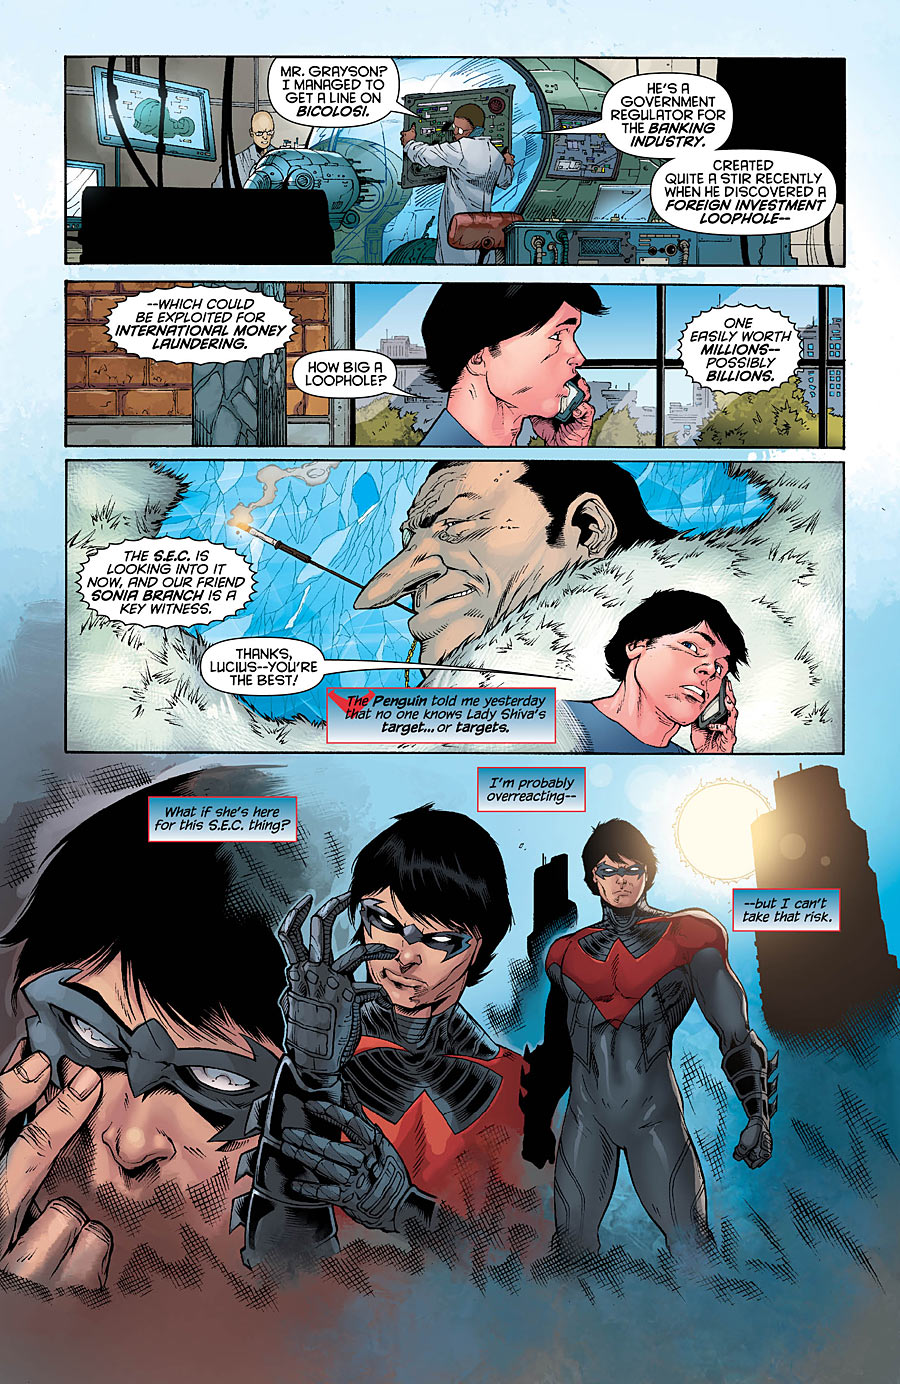 DC Comics - Nightwing #14 (Preview) - fizmarble